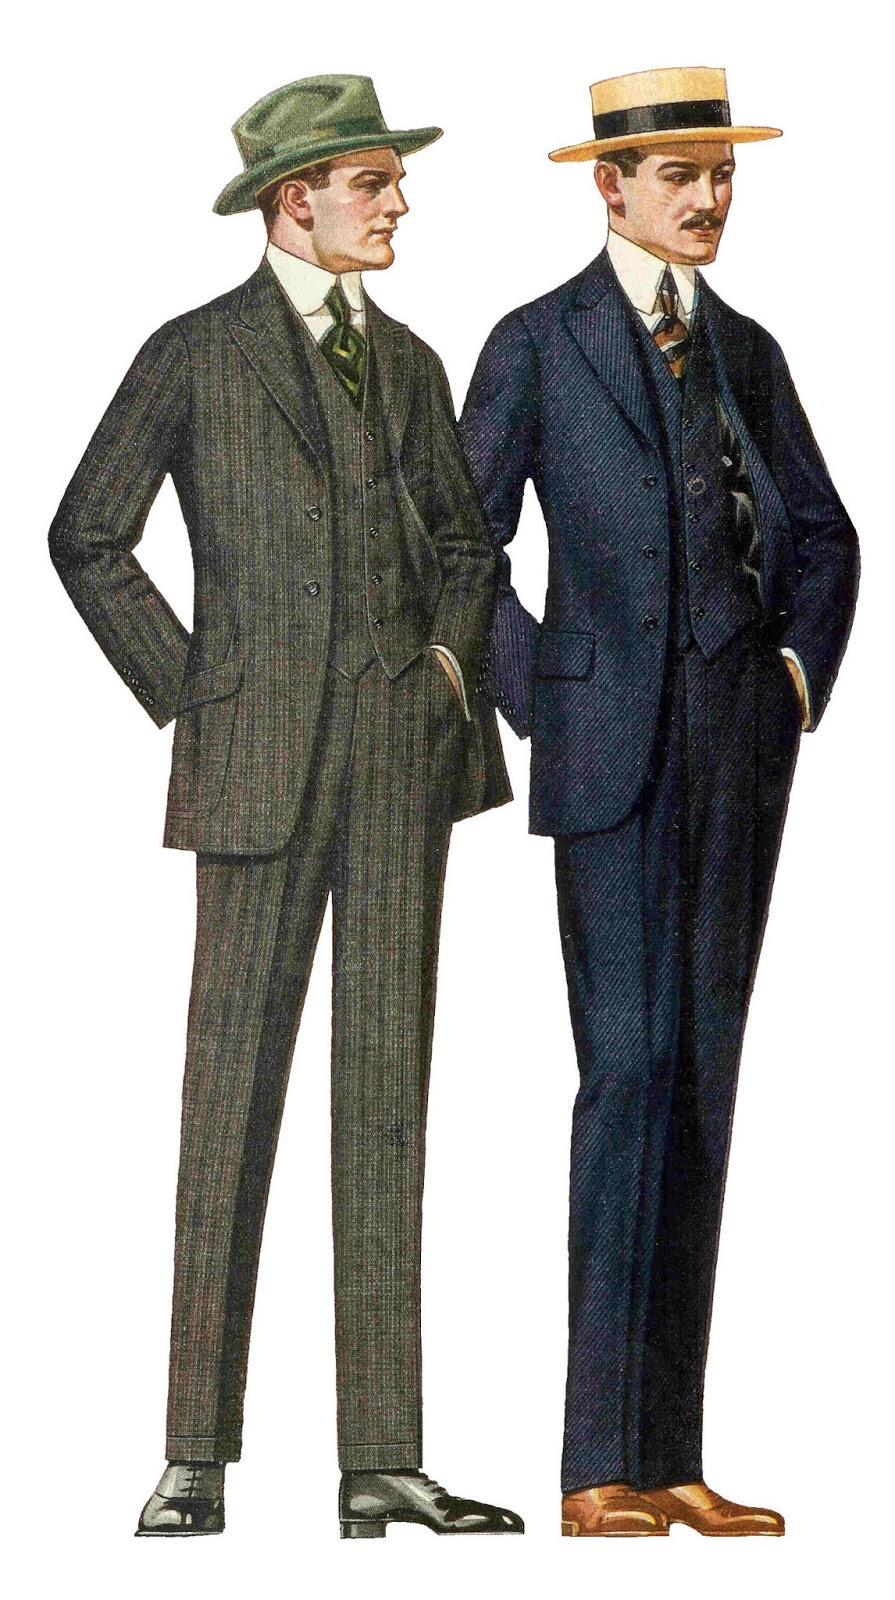 Free Fashion Clipart: Antique Images: Free Fashion Stock Image: Vintage Father's